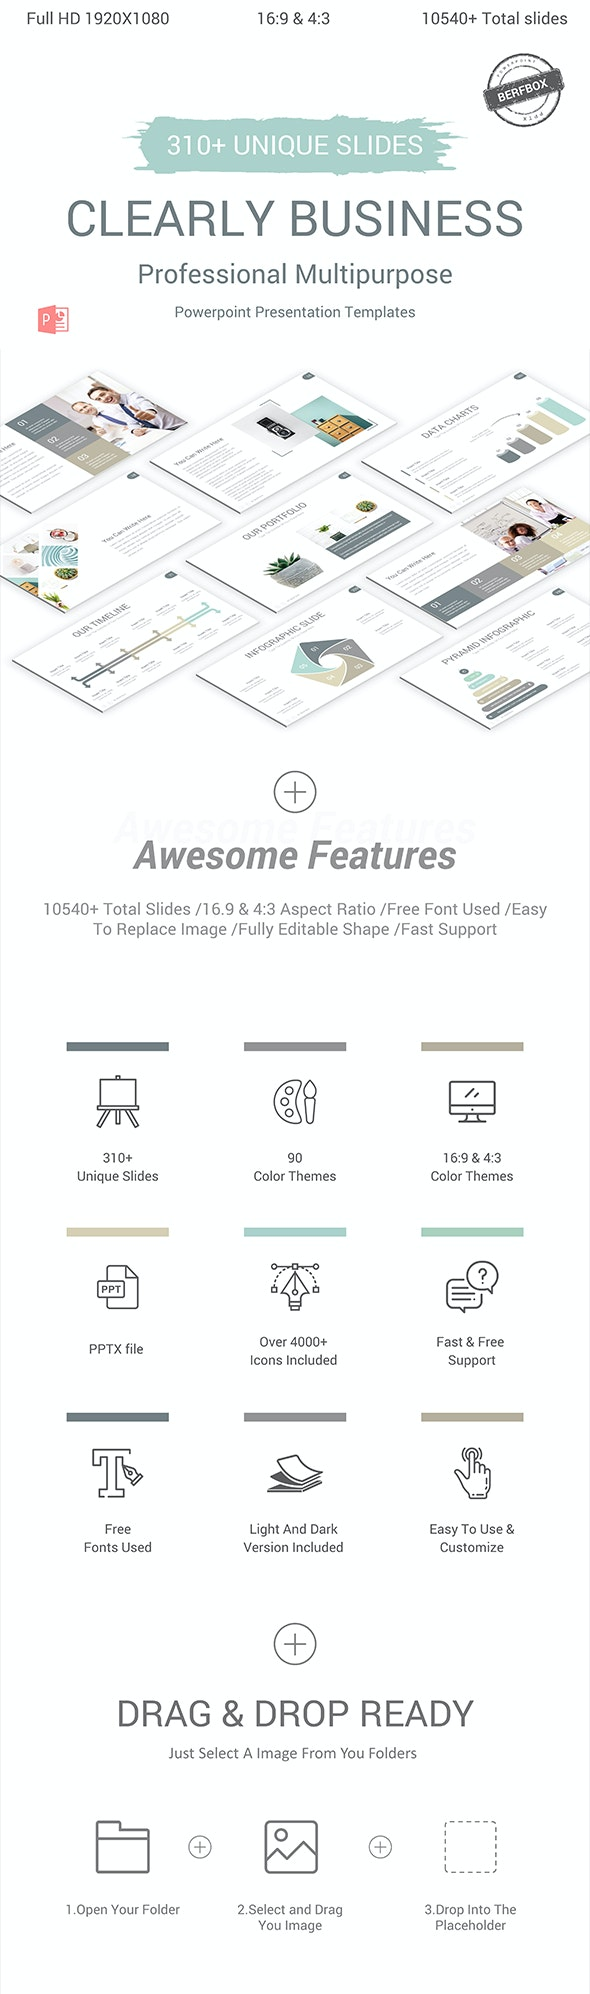 Clearly Business Powerpoint Presentation Template - PowerPoint Templates Presentation Templates